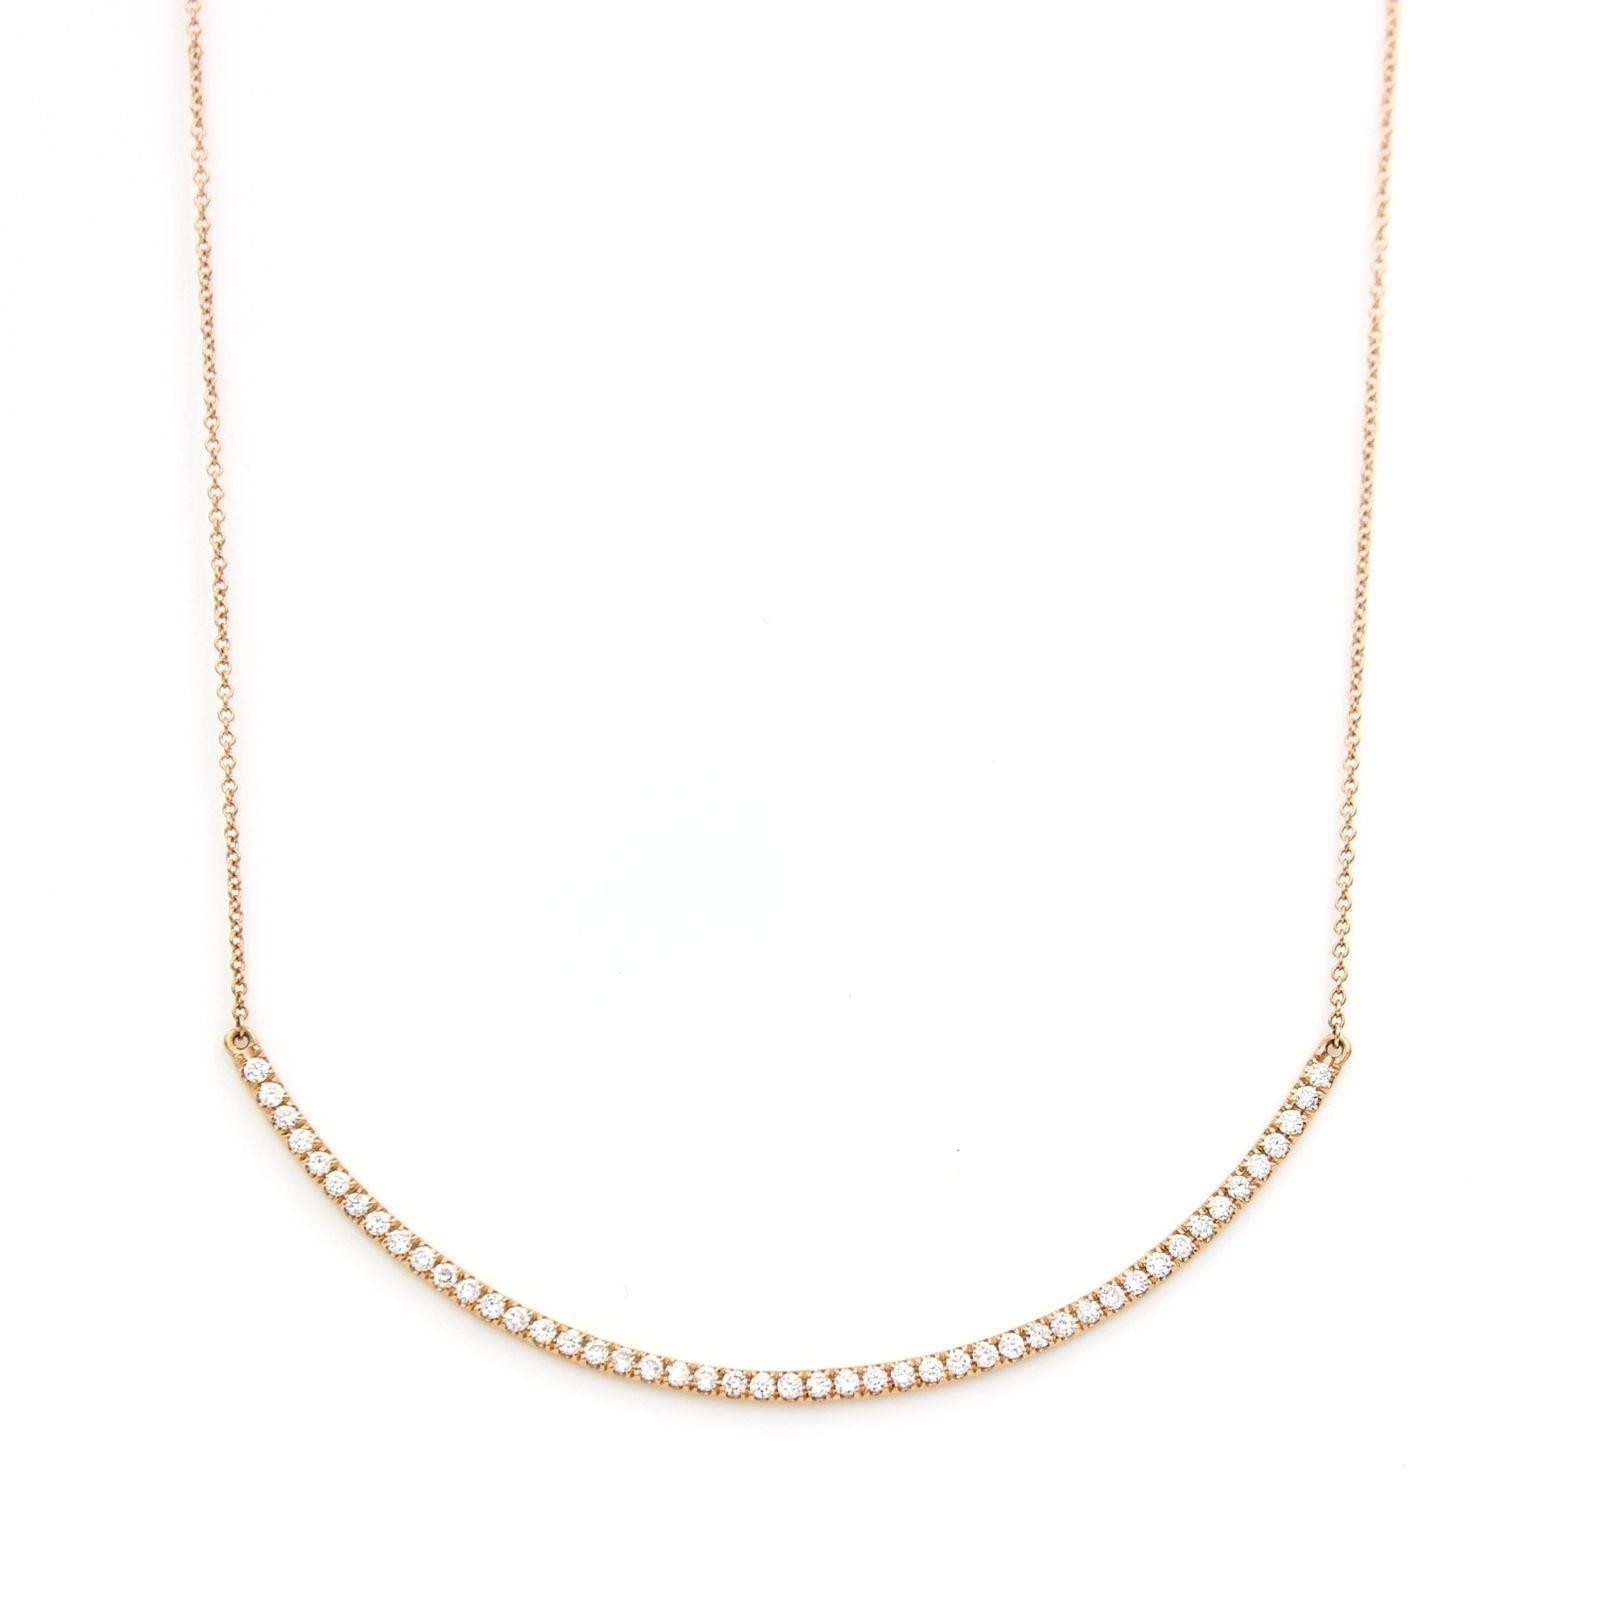 Rose Gold Curved Diamond Bar 18k 18 Necklace Tradesy